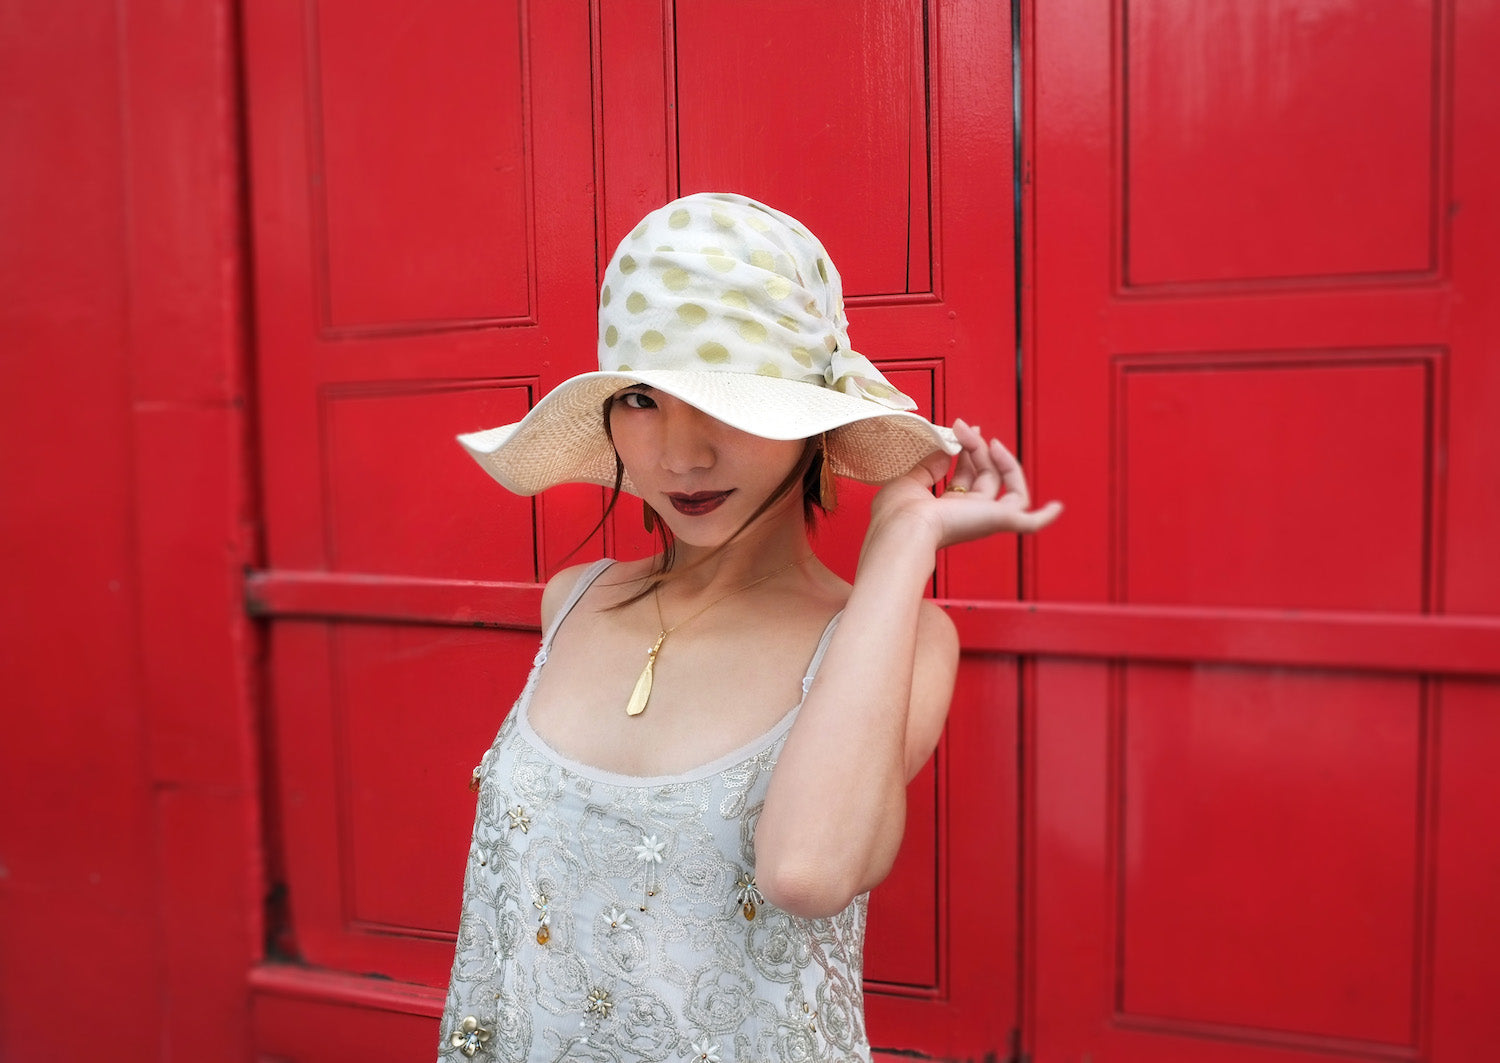 Lizzie-McQuade-luxury-hats-Marie-Antoinettes-chic-french-countryside-look-golden-wave-brimmed-sunhat-1p87